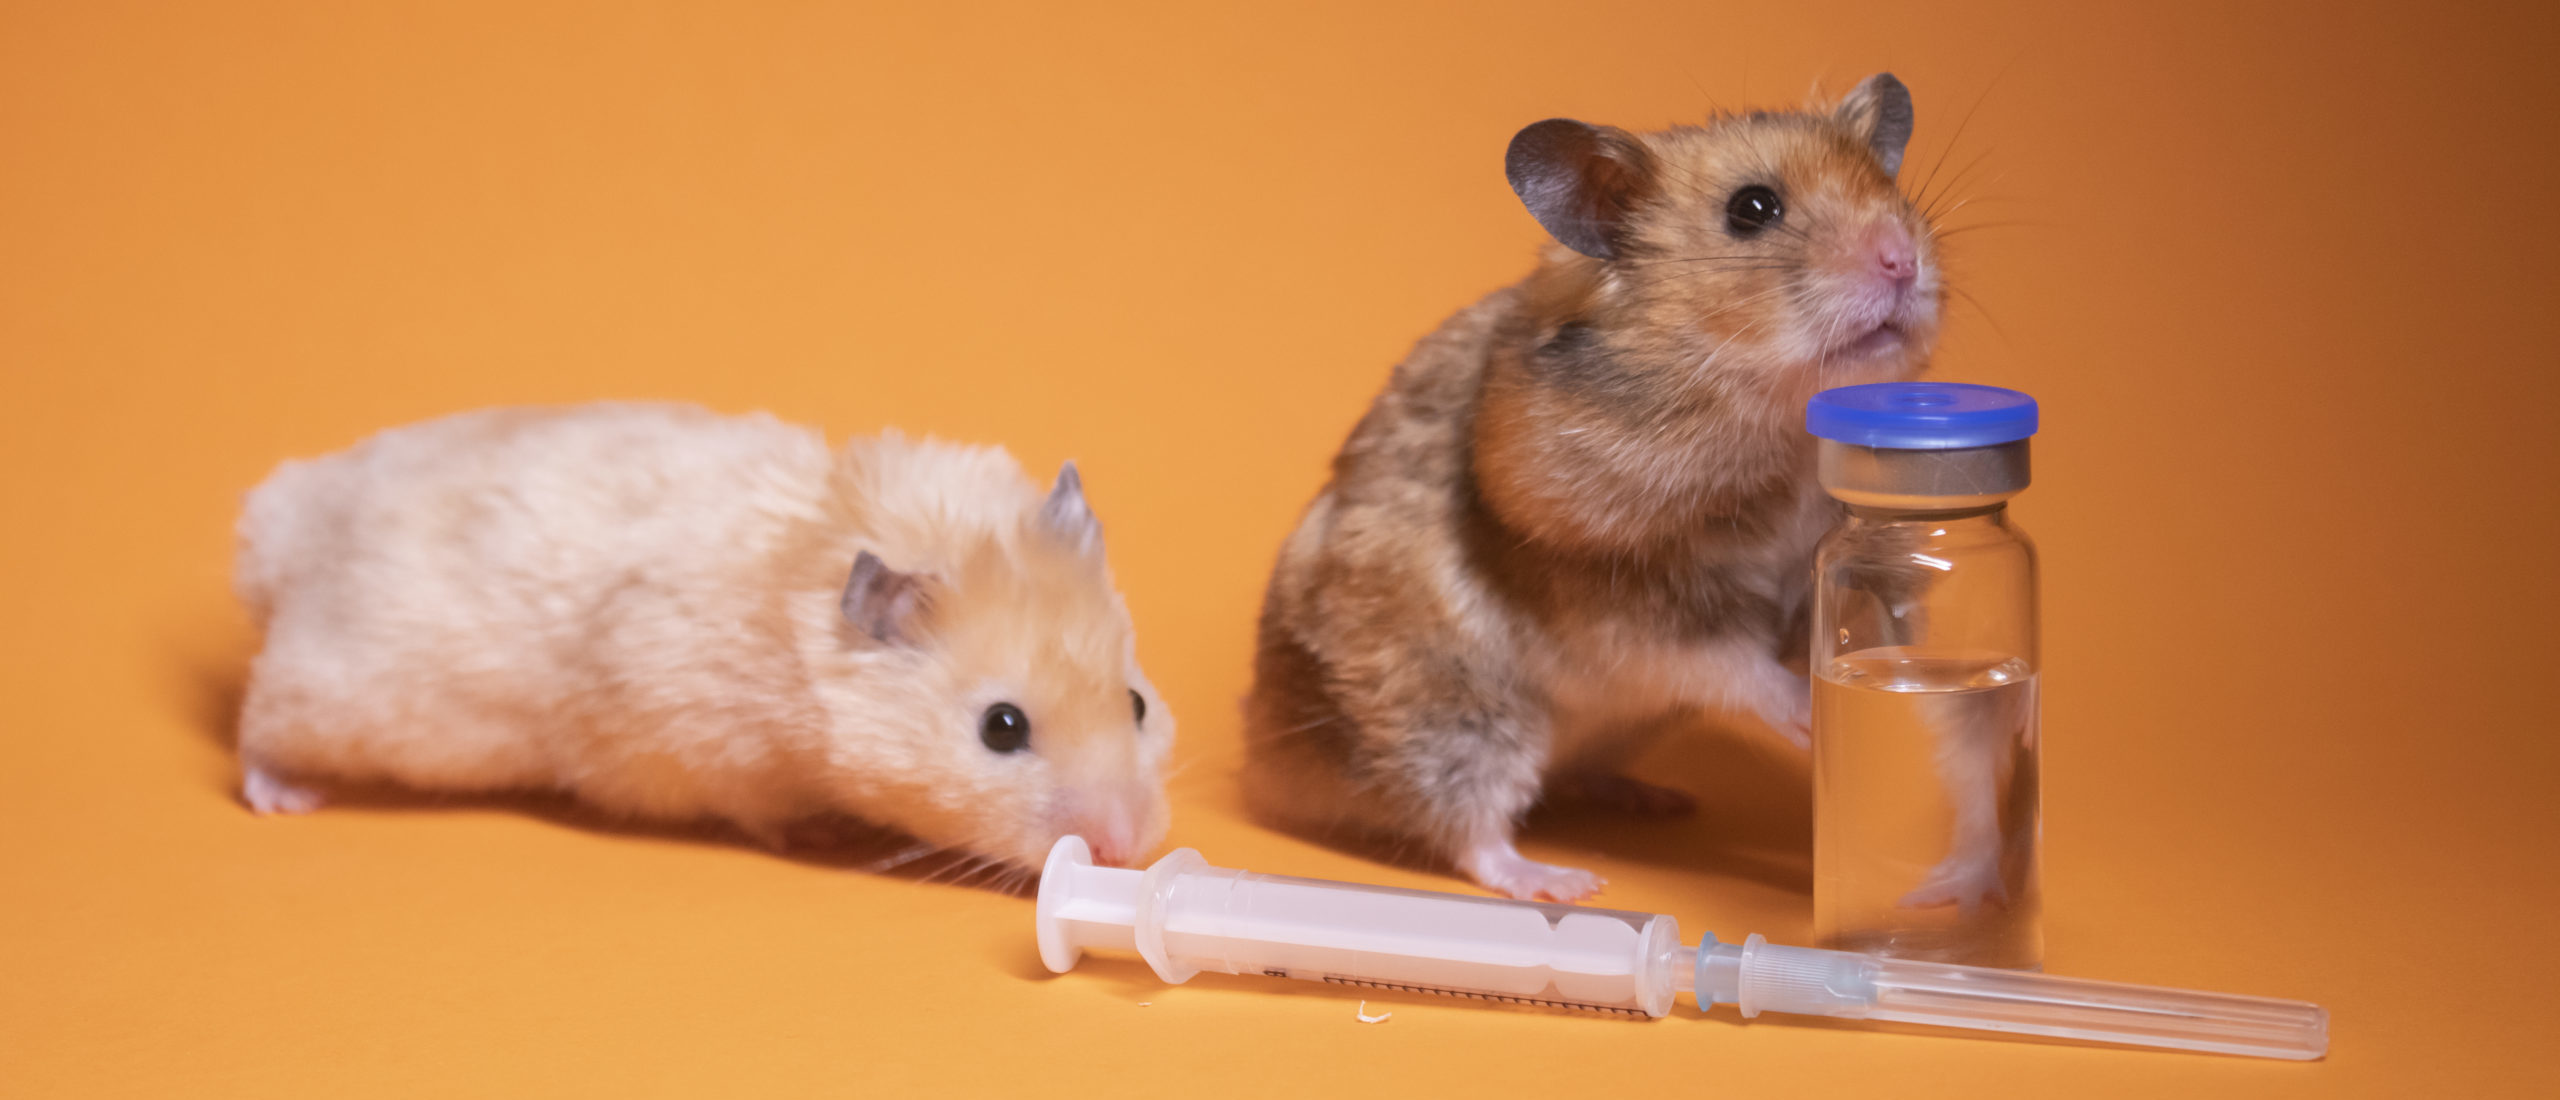 Decades of research with animals including mice, Syrian hamsters and nonhuman primates laid the groundwork for vaccines and drugs to prevent and treat COVID-19. (Photo: Olga Skred / iStock / Getty Images Plus)